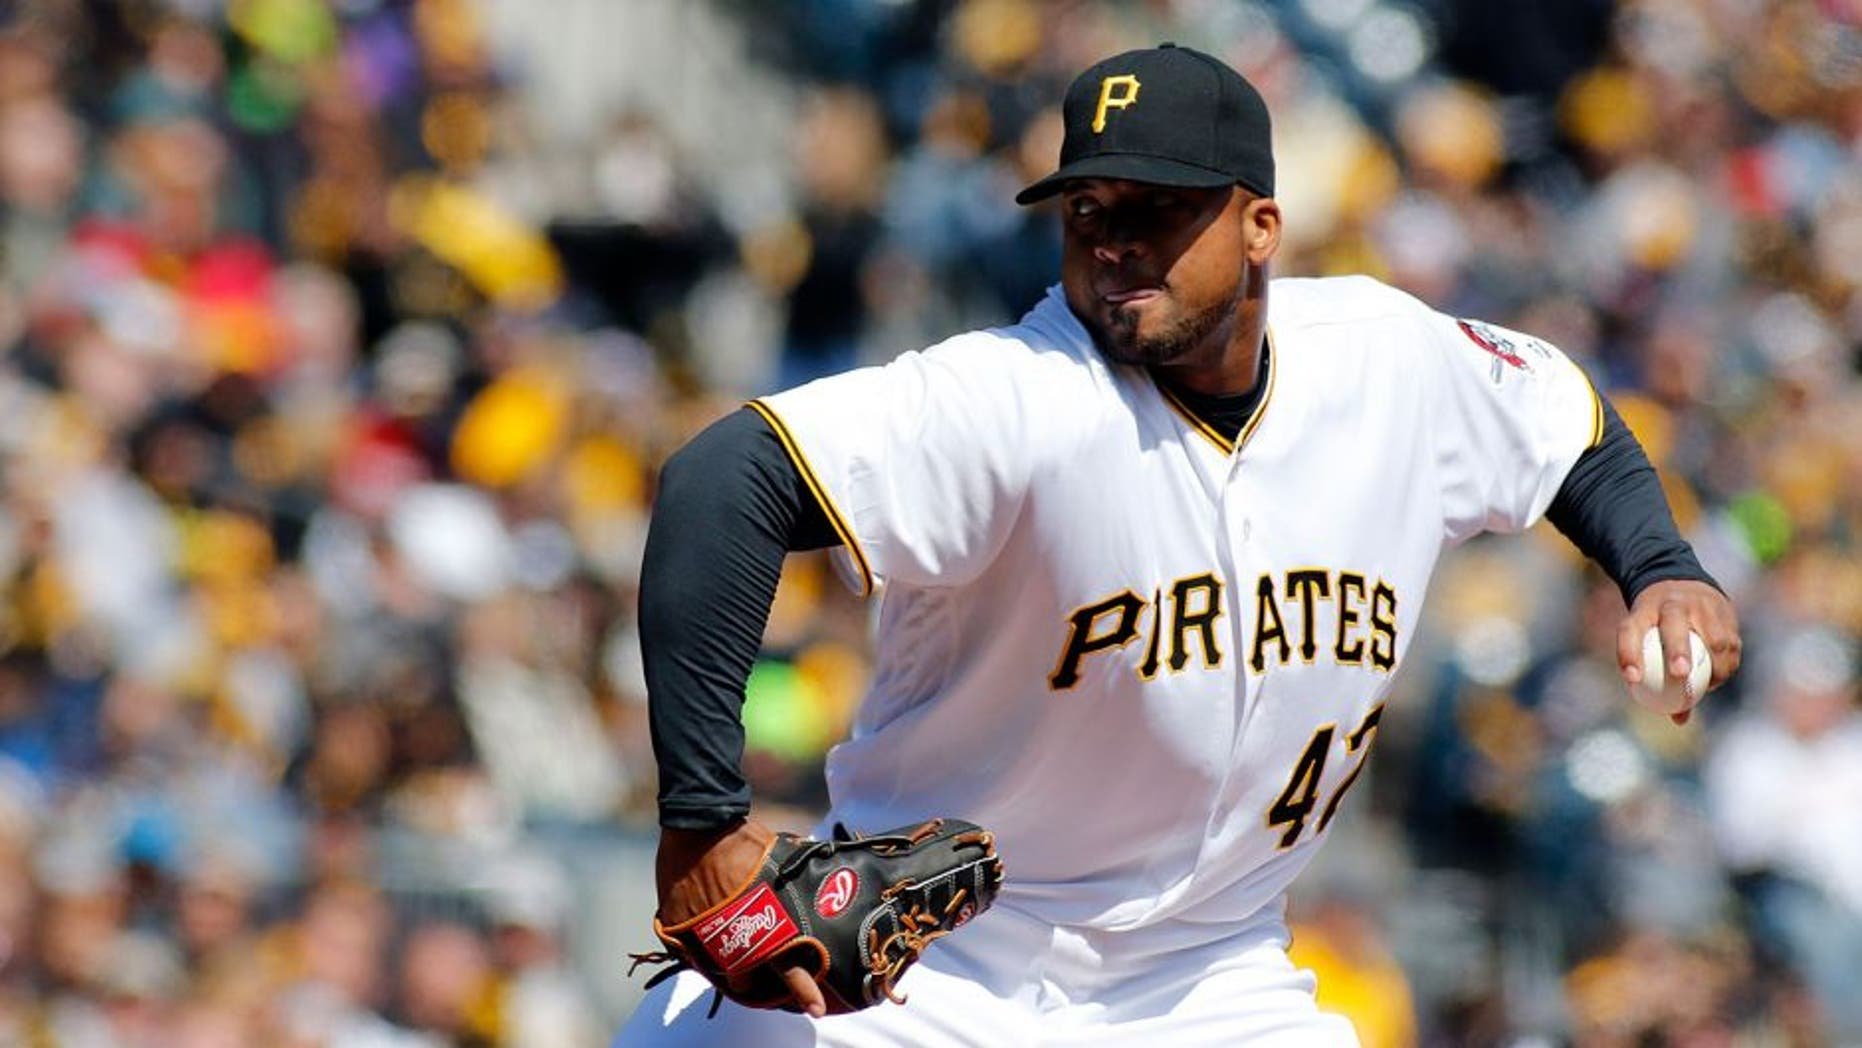 PITTSBURGH, PA - APRIL 03: Francisco Liriano #47 of the Pittsburgh Pirates pitches during opening day against the St. Louis Cardinals at PNC Park on April 3, 2016 in Pittsburgh, Pennsylvania. (Photo by Justin K. Aller/Getty Images)